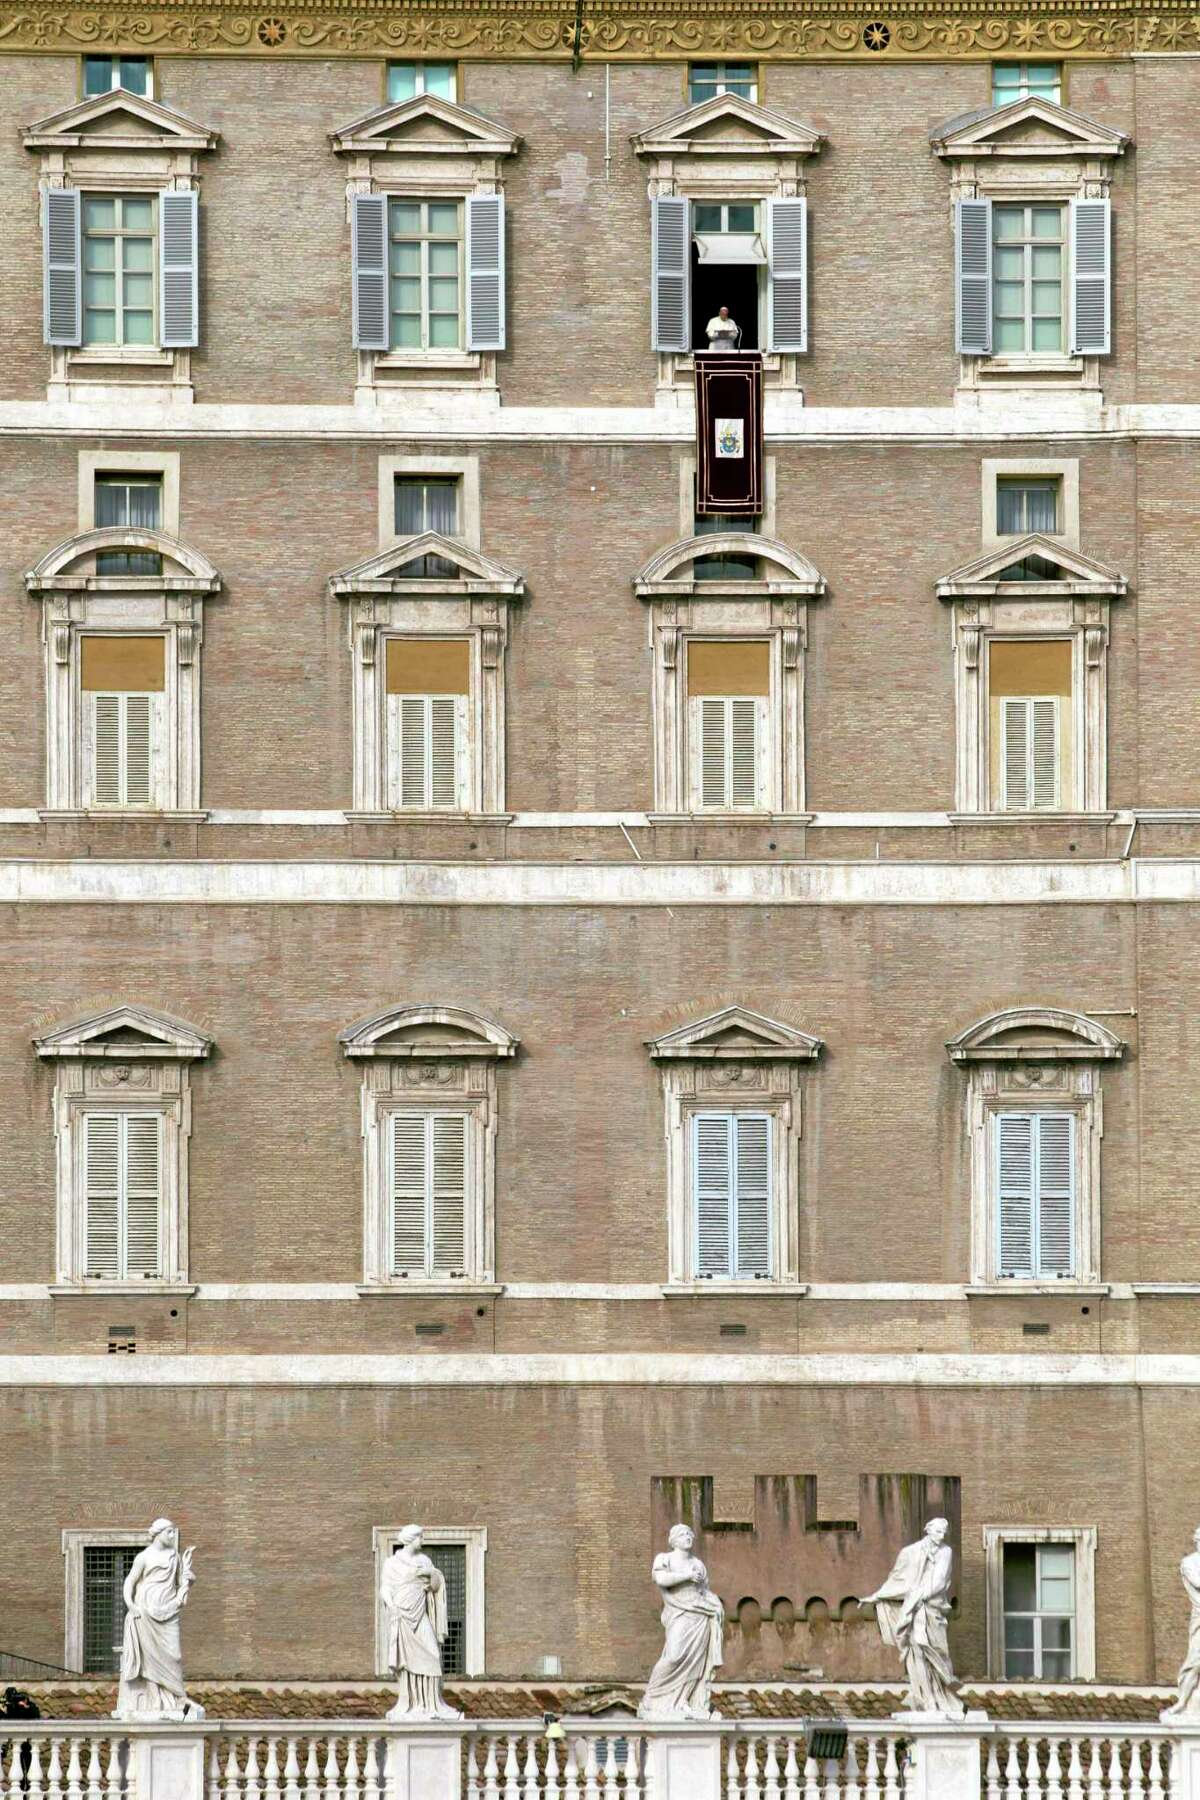 Pope Francis delivers his message during the Angelus noon prayer he celebrated from the window of his studio overlooking St. Peter's Square at the Vatican, Wednesday, Jan. 1, 2014.